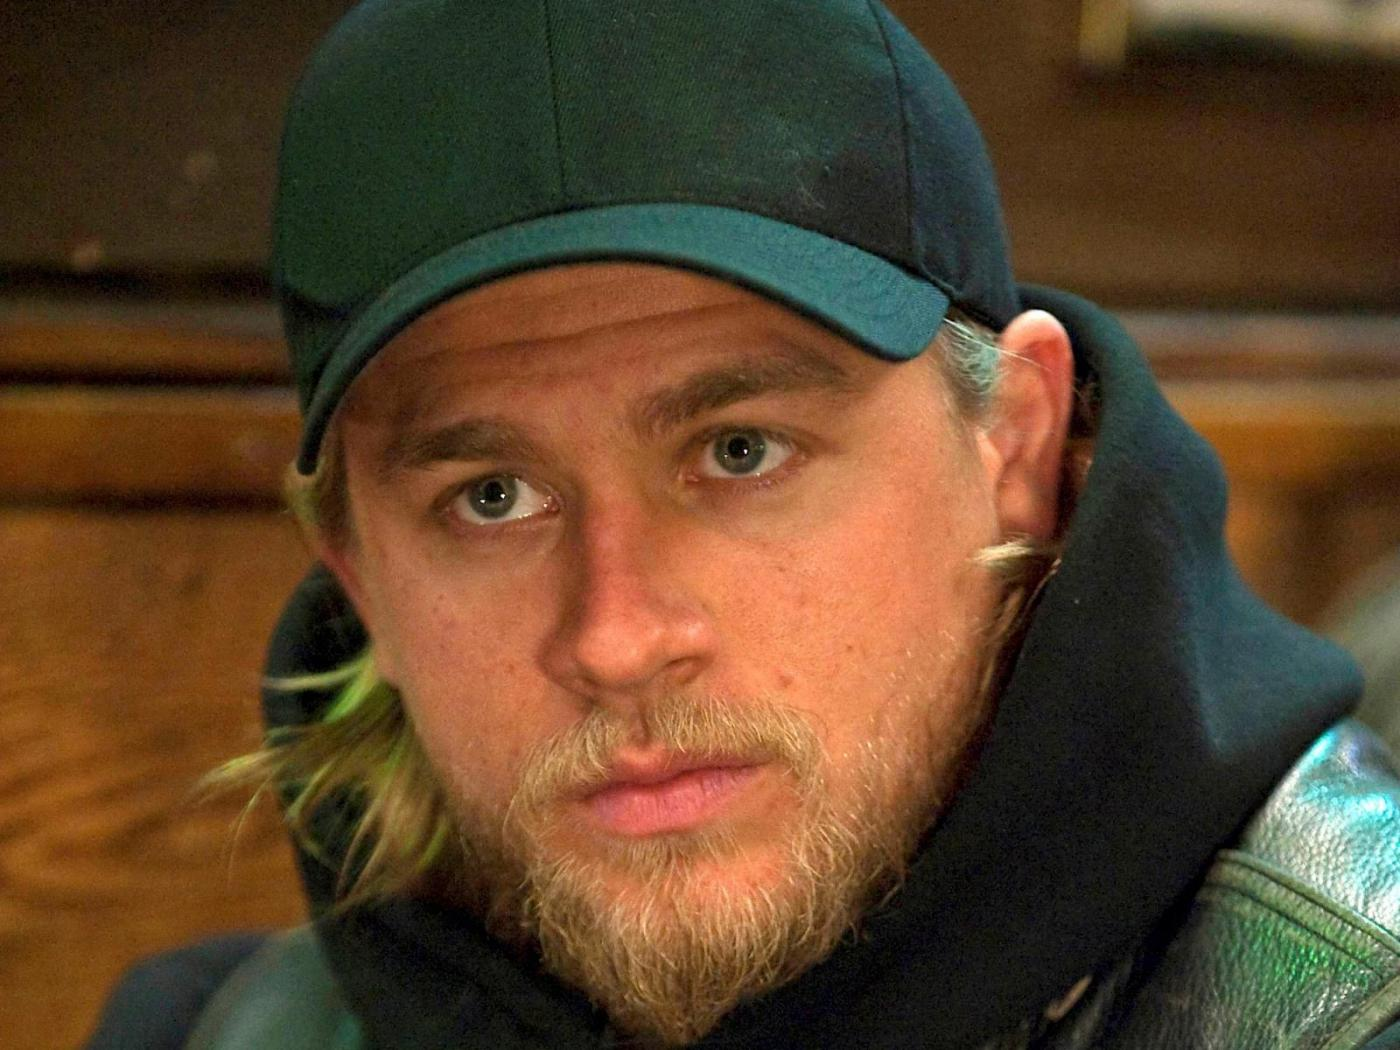 Charlie Hunnam 1400x1050 Wallpapers 1400x1050 Wallpapers Pictures 1400x1050